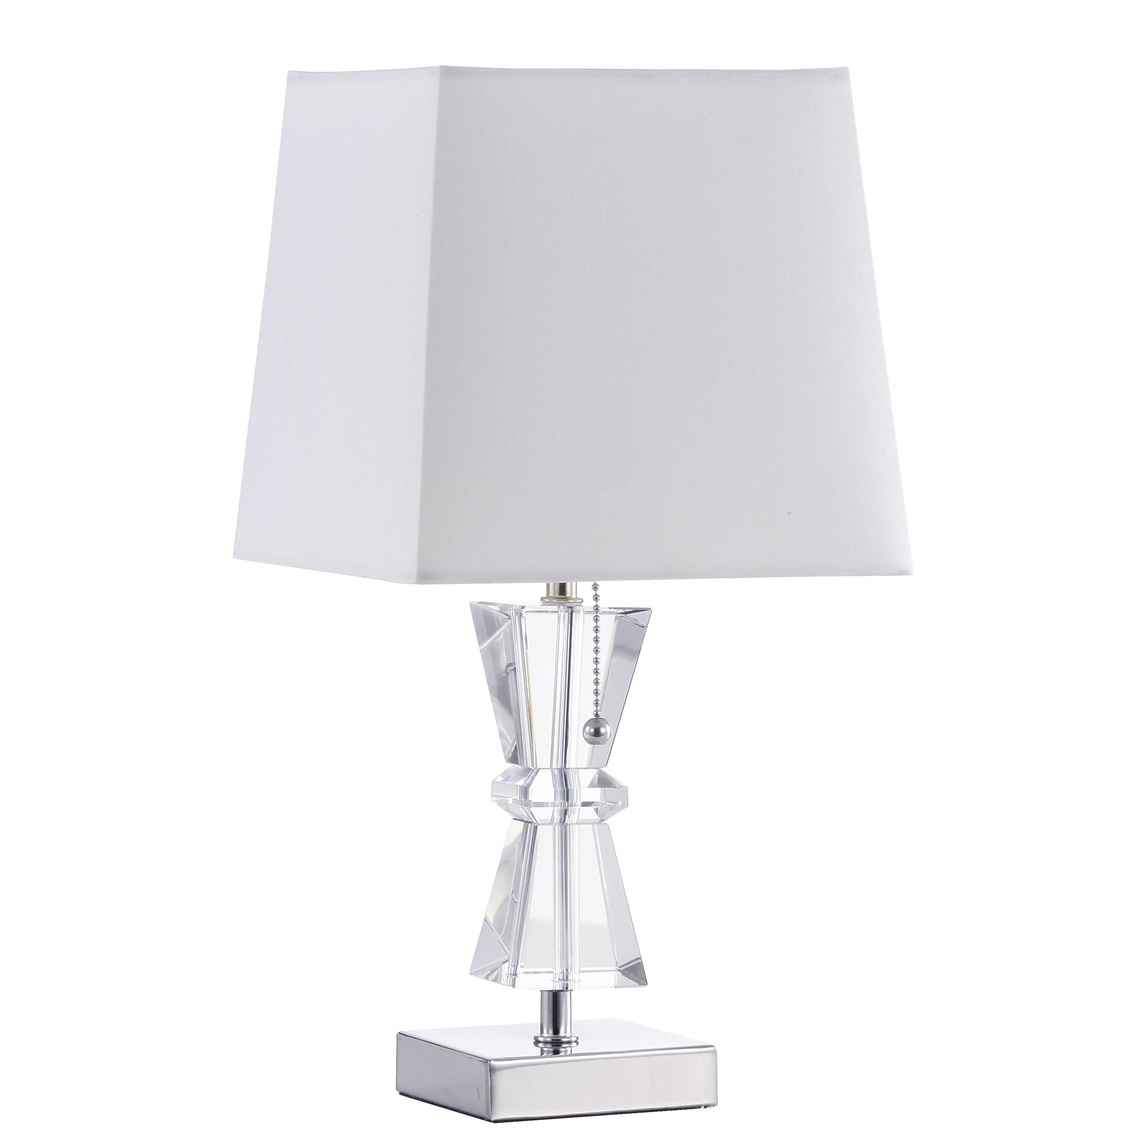 Lampe De Table En Cristal Incandescent,C96T-PC